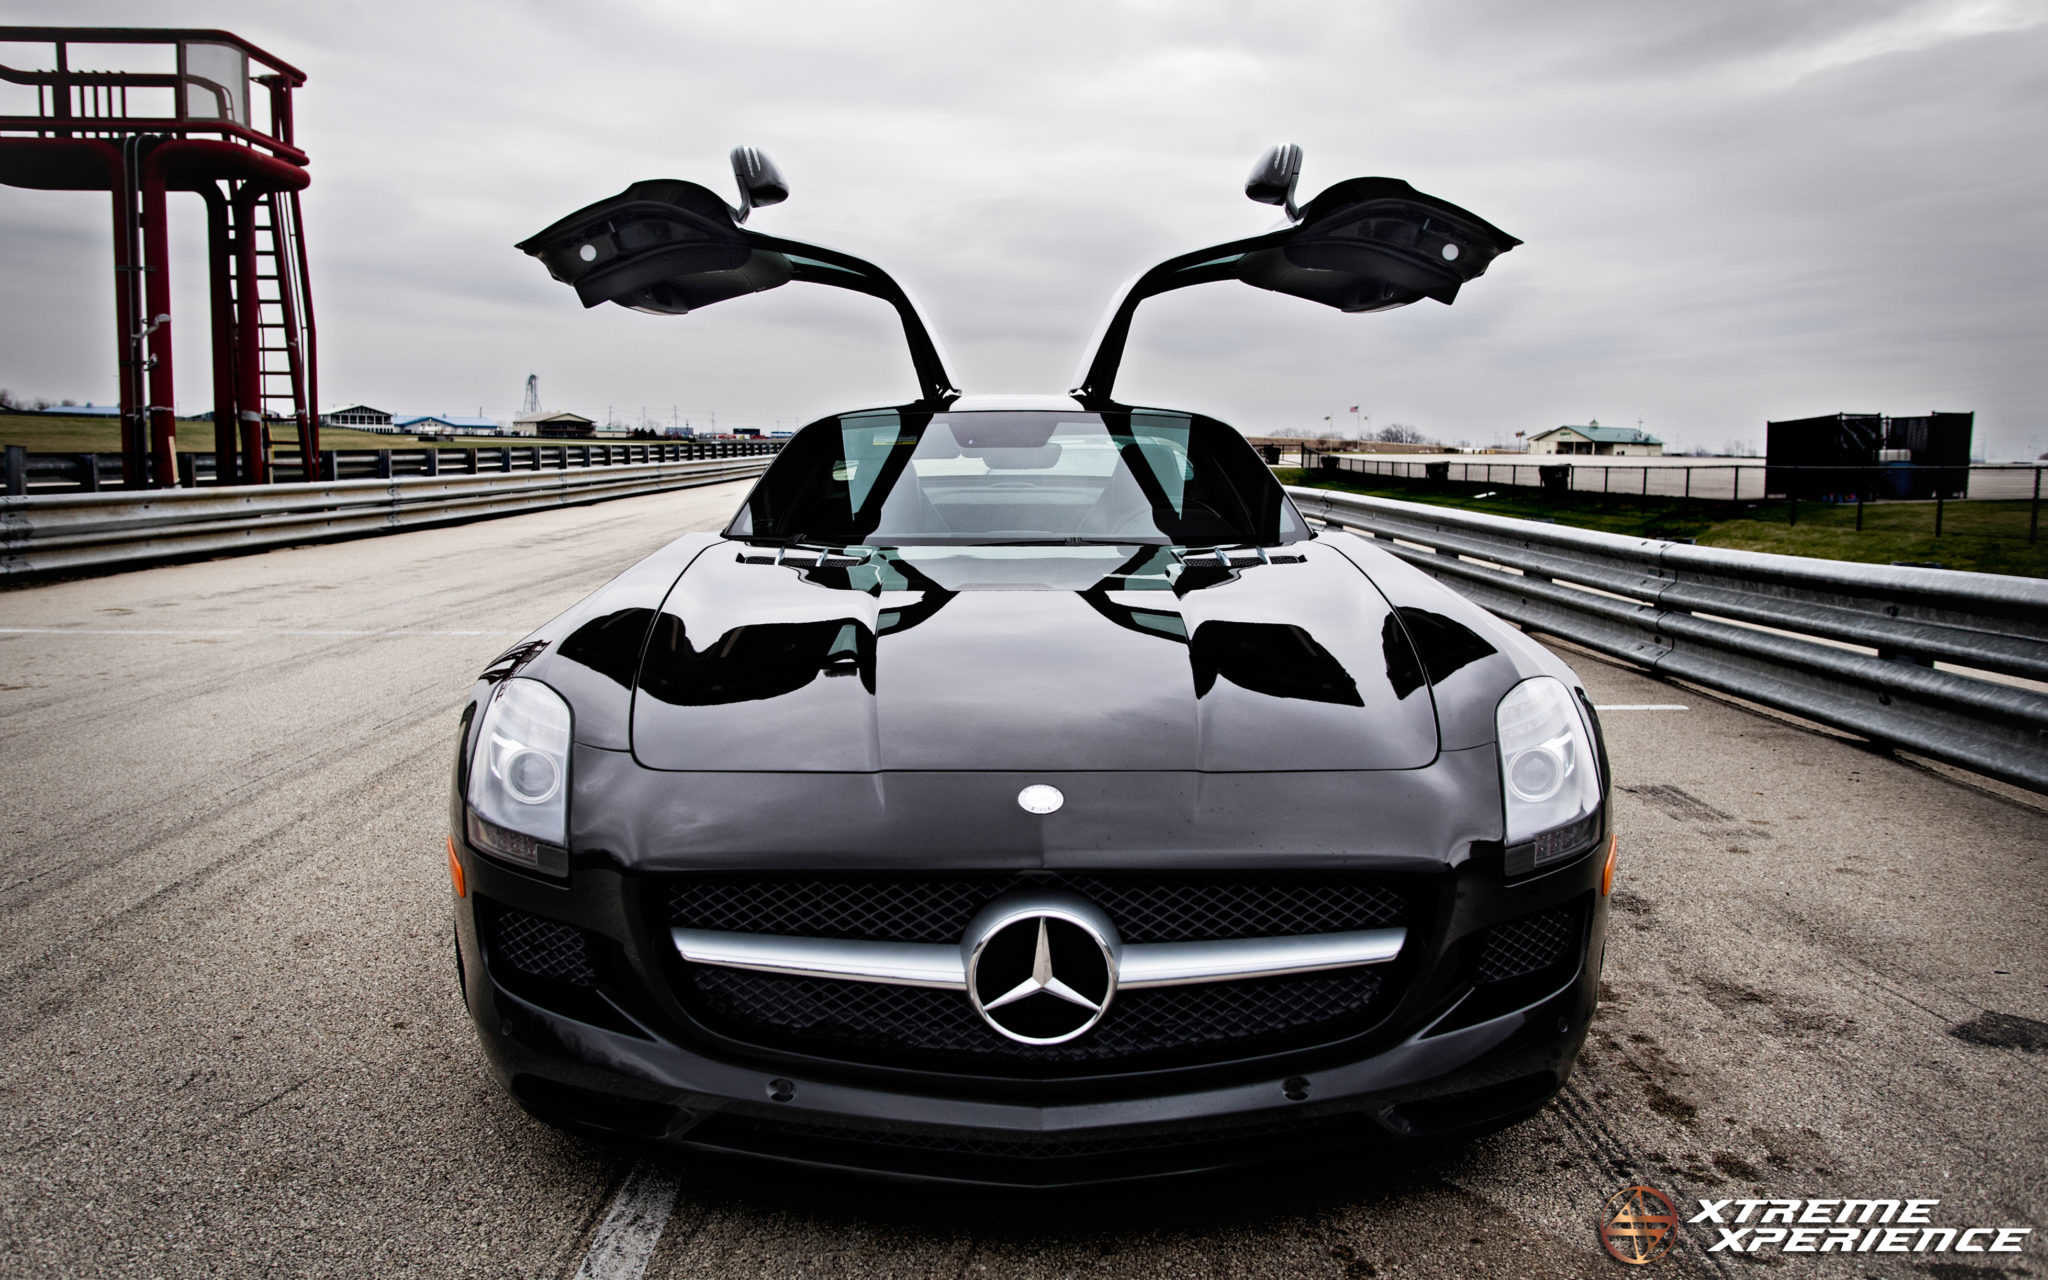 2048x1280 Mercedes Benz SLS AMG wallpaper by Xtreme Xperience · DOWNLOAD the Hi-Res  Wallpaper